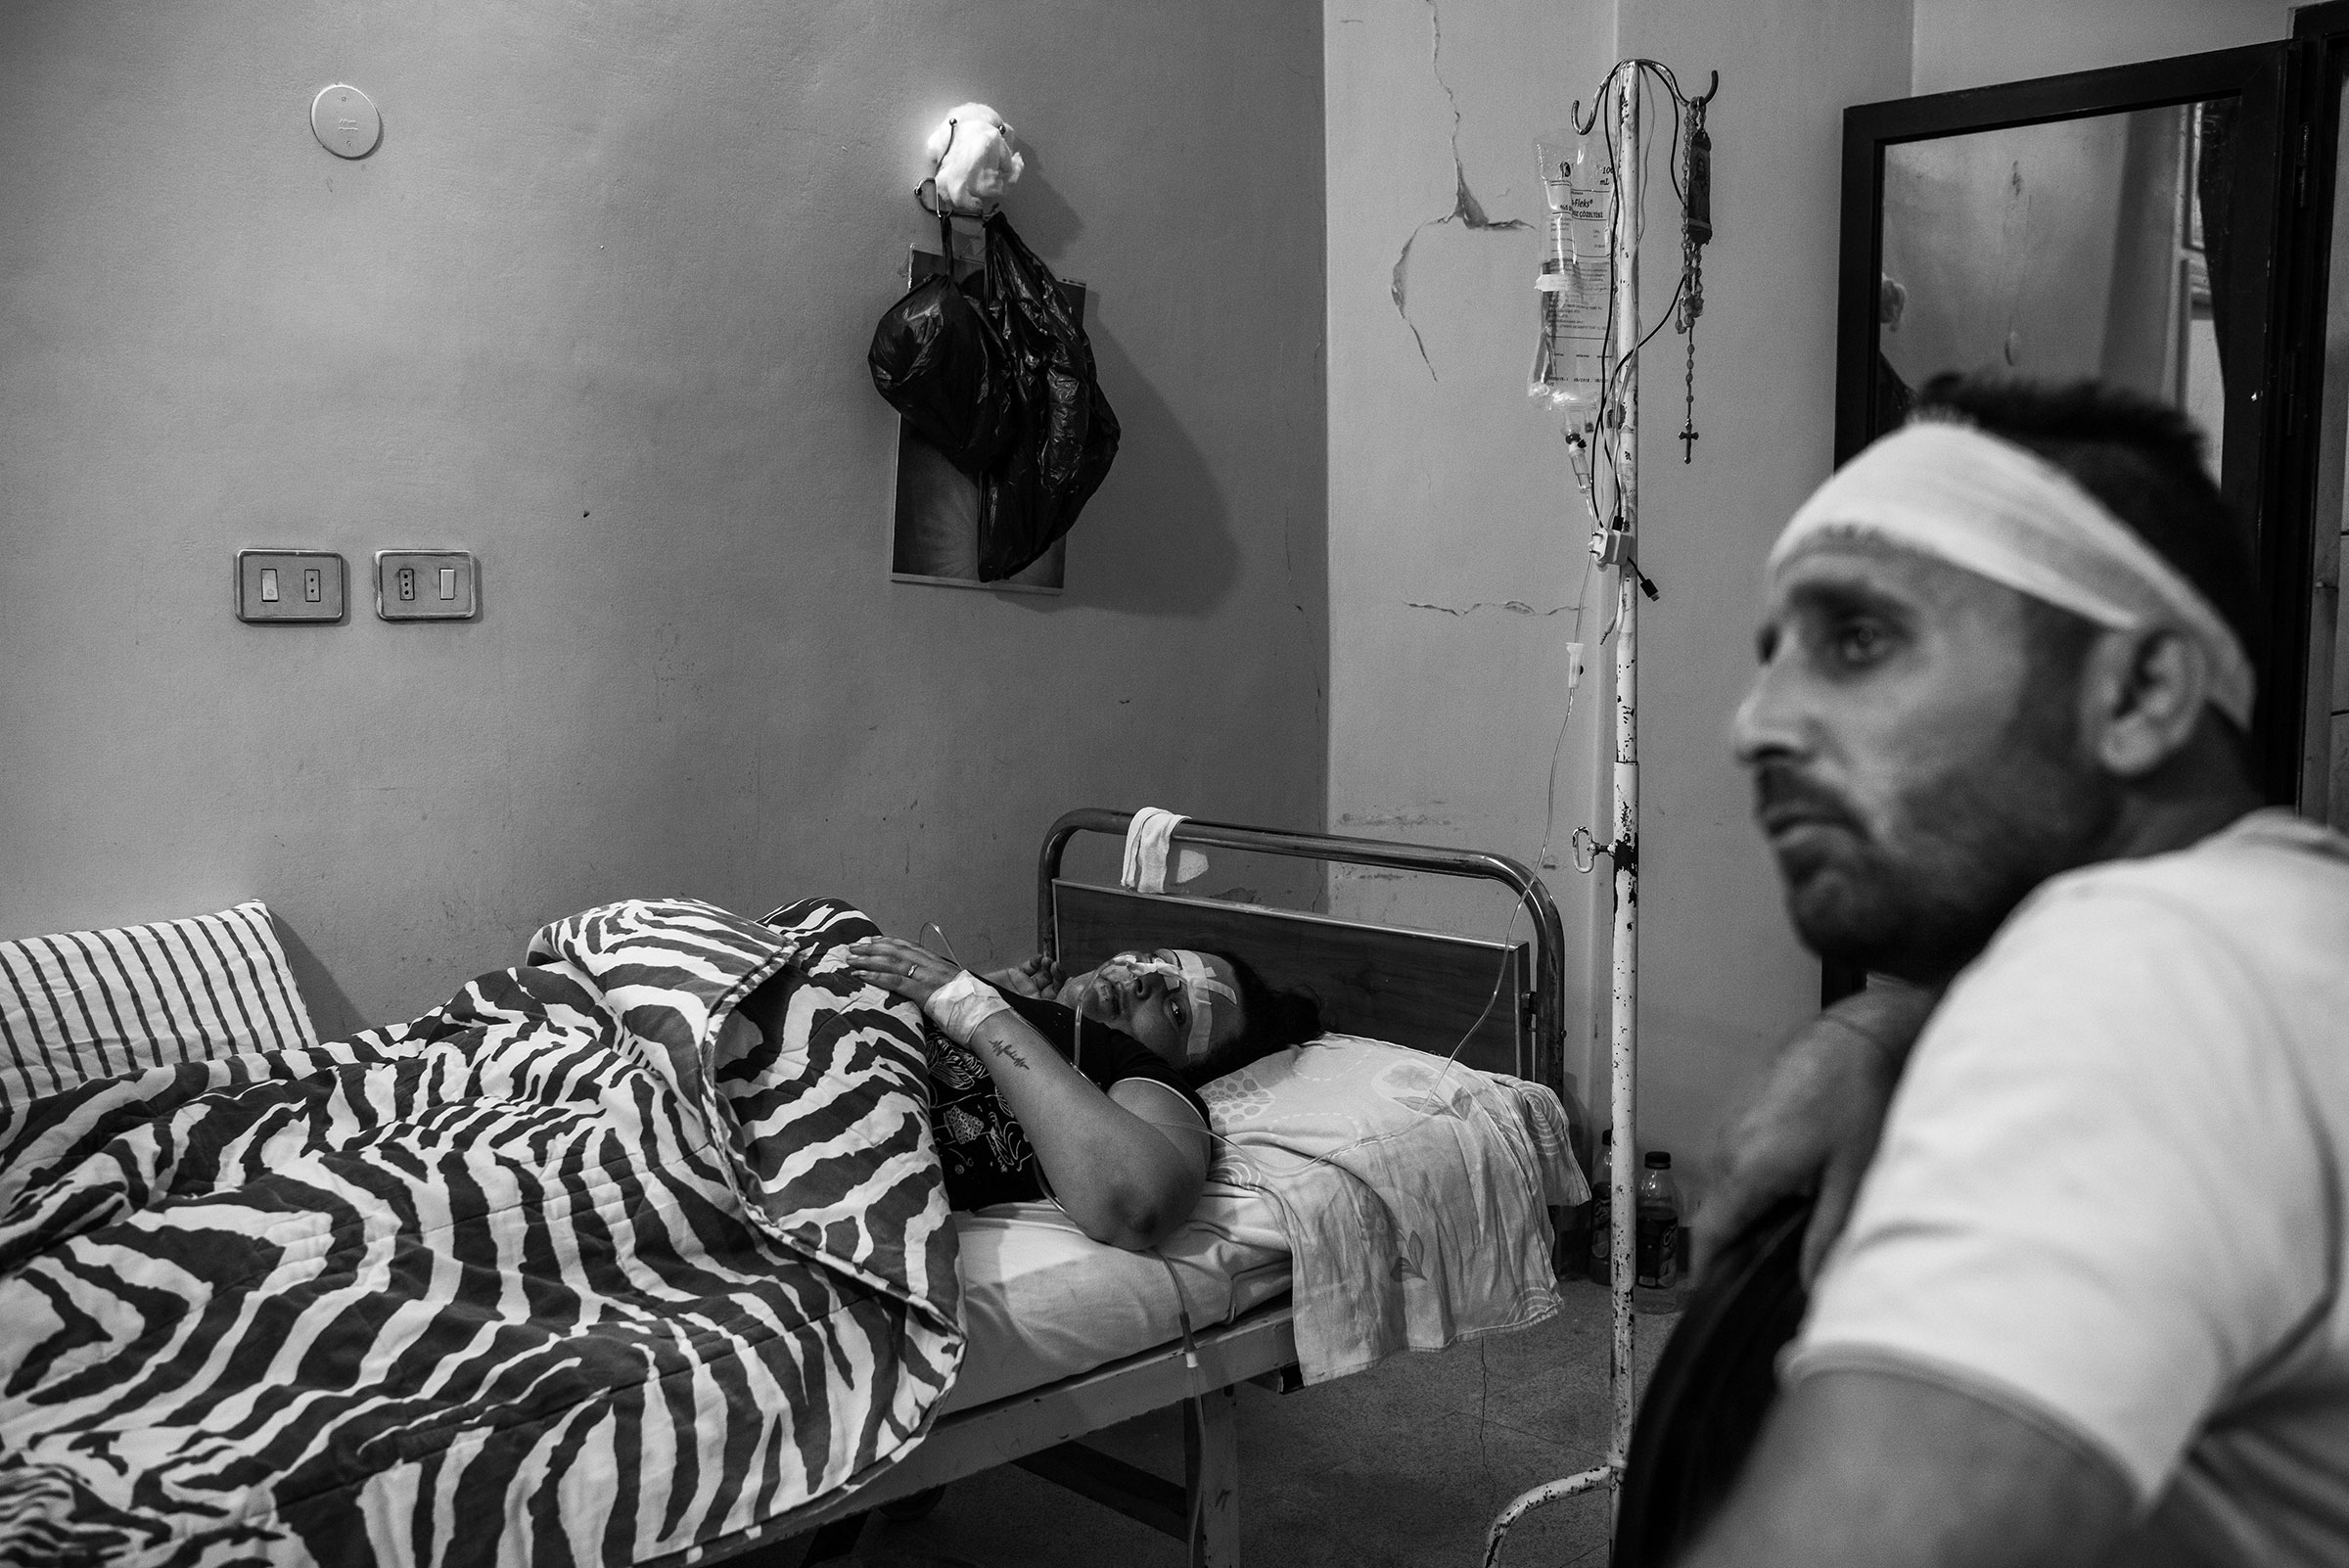 A Christian husband (TK name) and wife (TK name) injured by Turkish shelling sit in a hospital, in Qamishli, Syria on October 21, 2019.